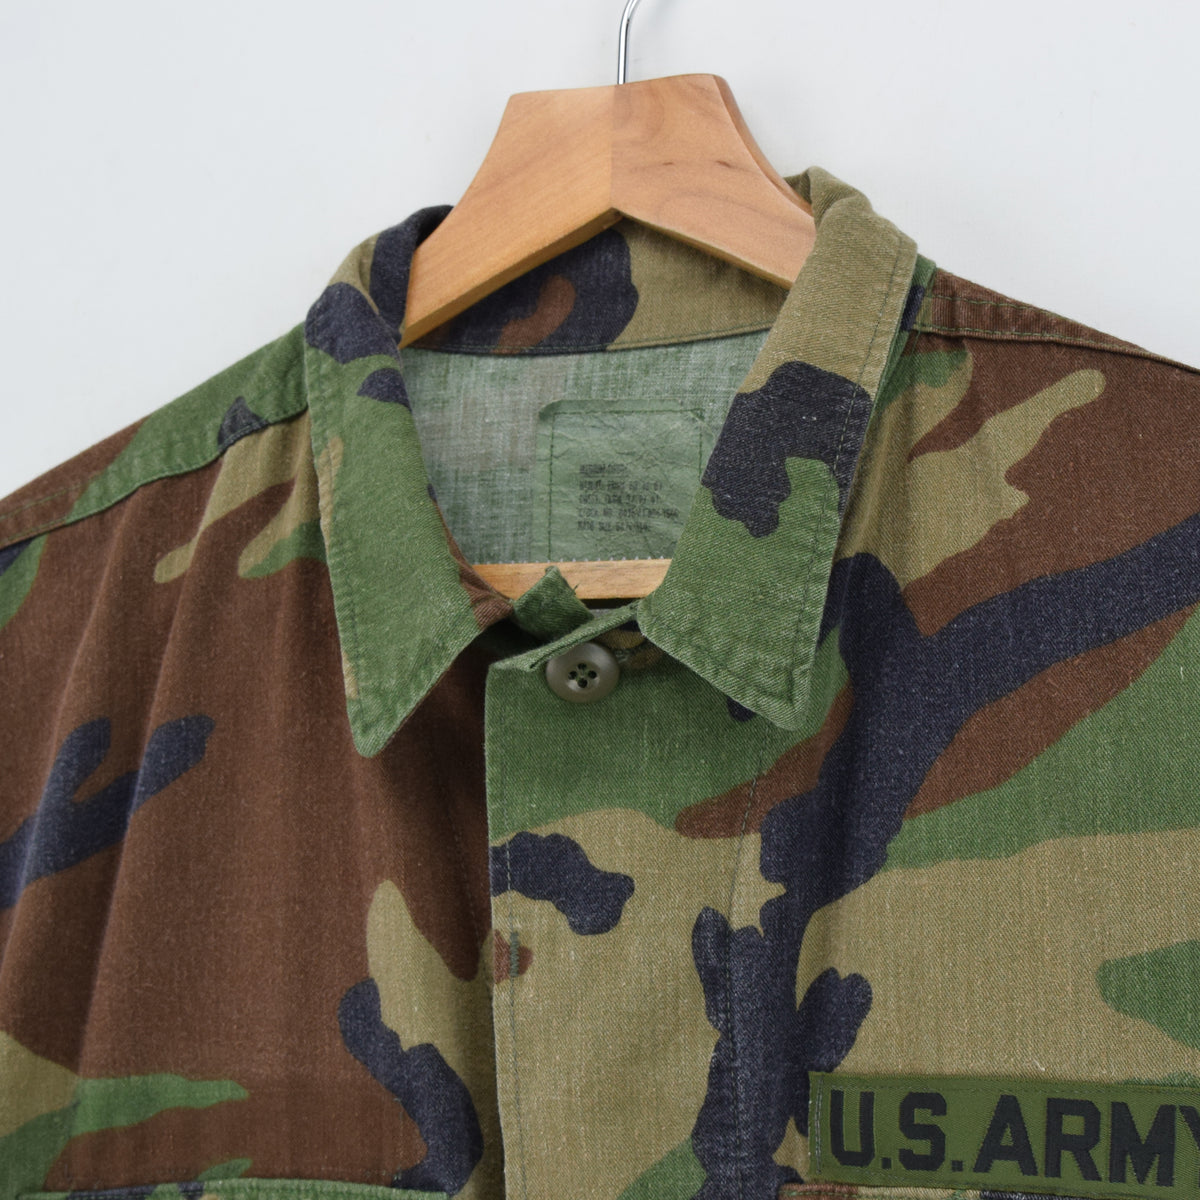 Vintage 80s US Army Woodland Camouflage BDU Combat Coat Field Jacket M Short collar